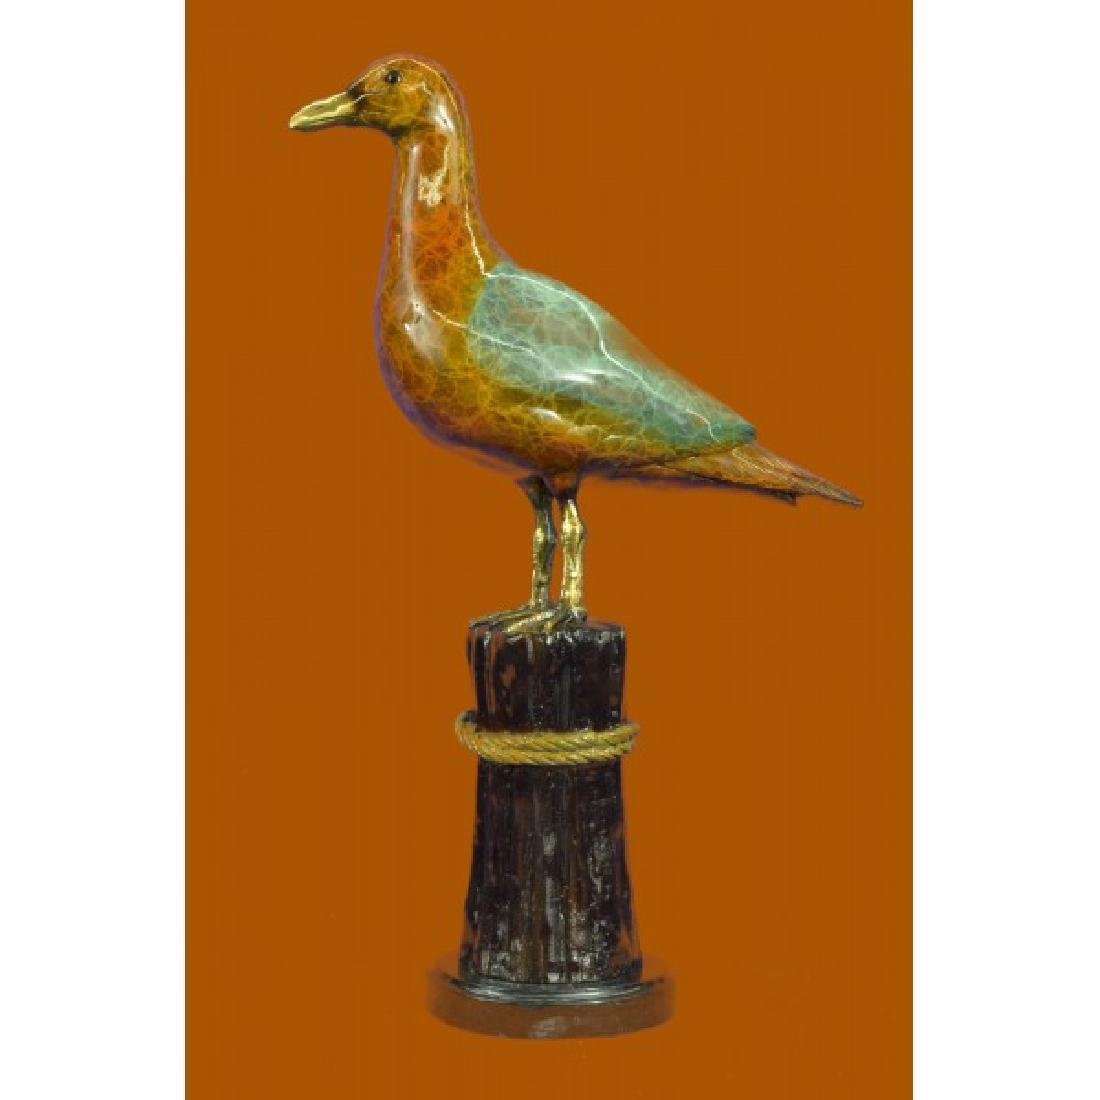 LIMITED EDITION GORGEOUS SEAGULL BRONZE SCULPTURE ON